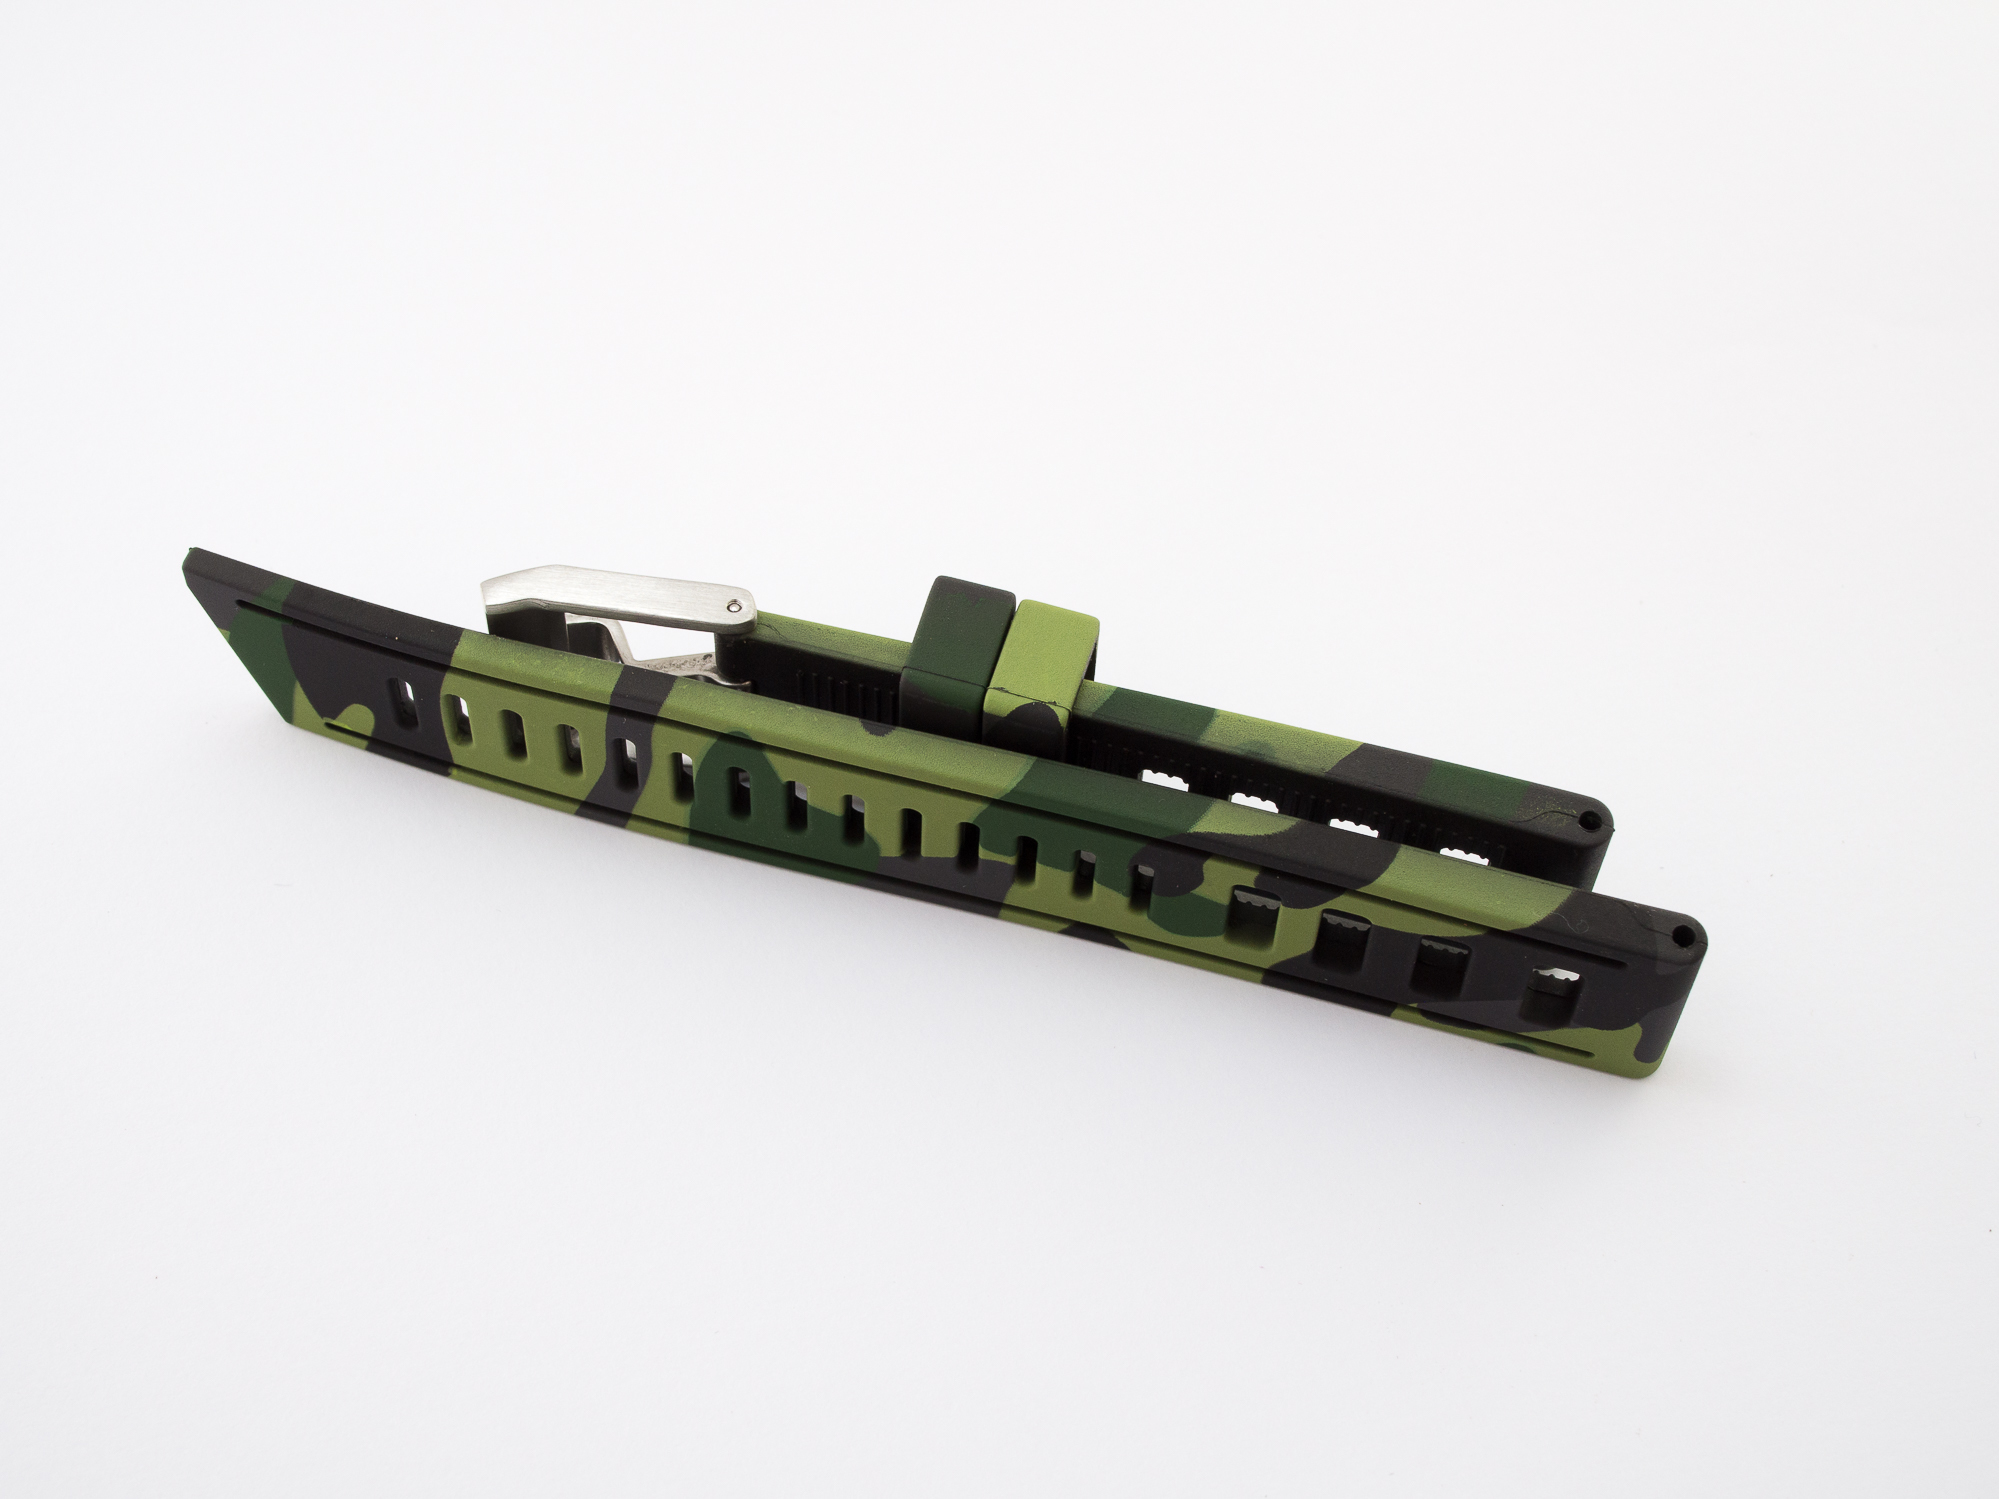 Borealis Vulcanized Rubber Strap 22mm Jungle Camo Strap - Best Offer in Market for Diver Watches